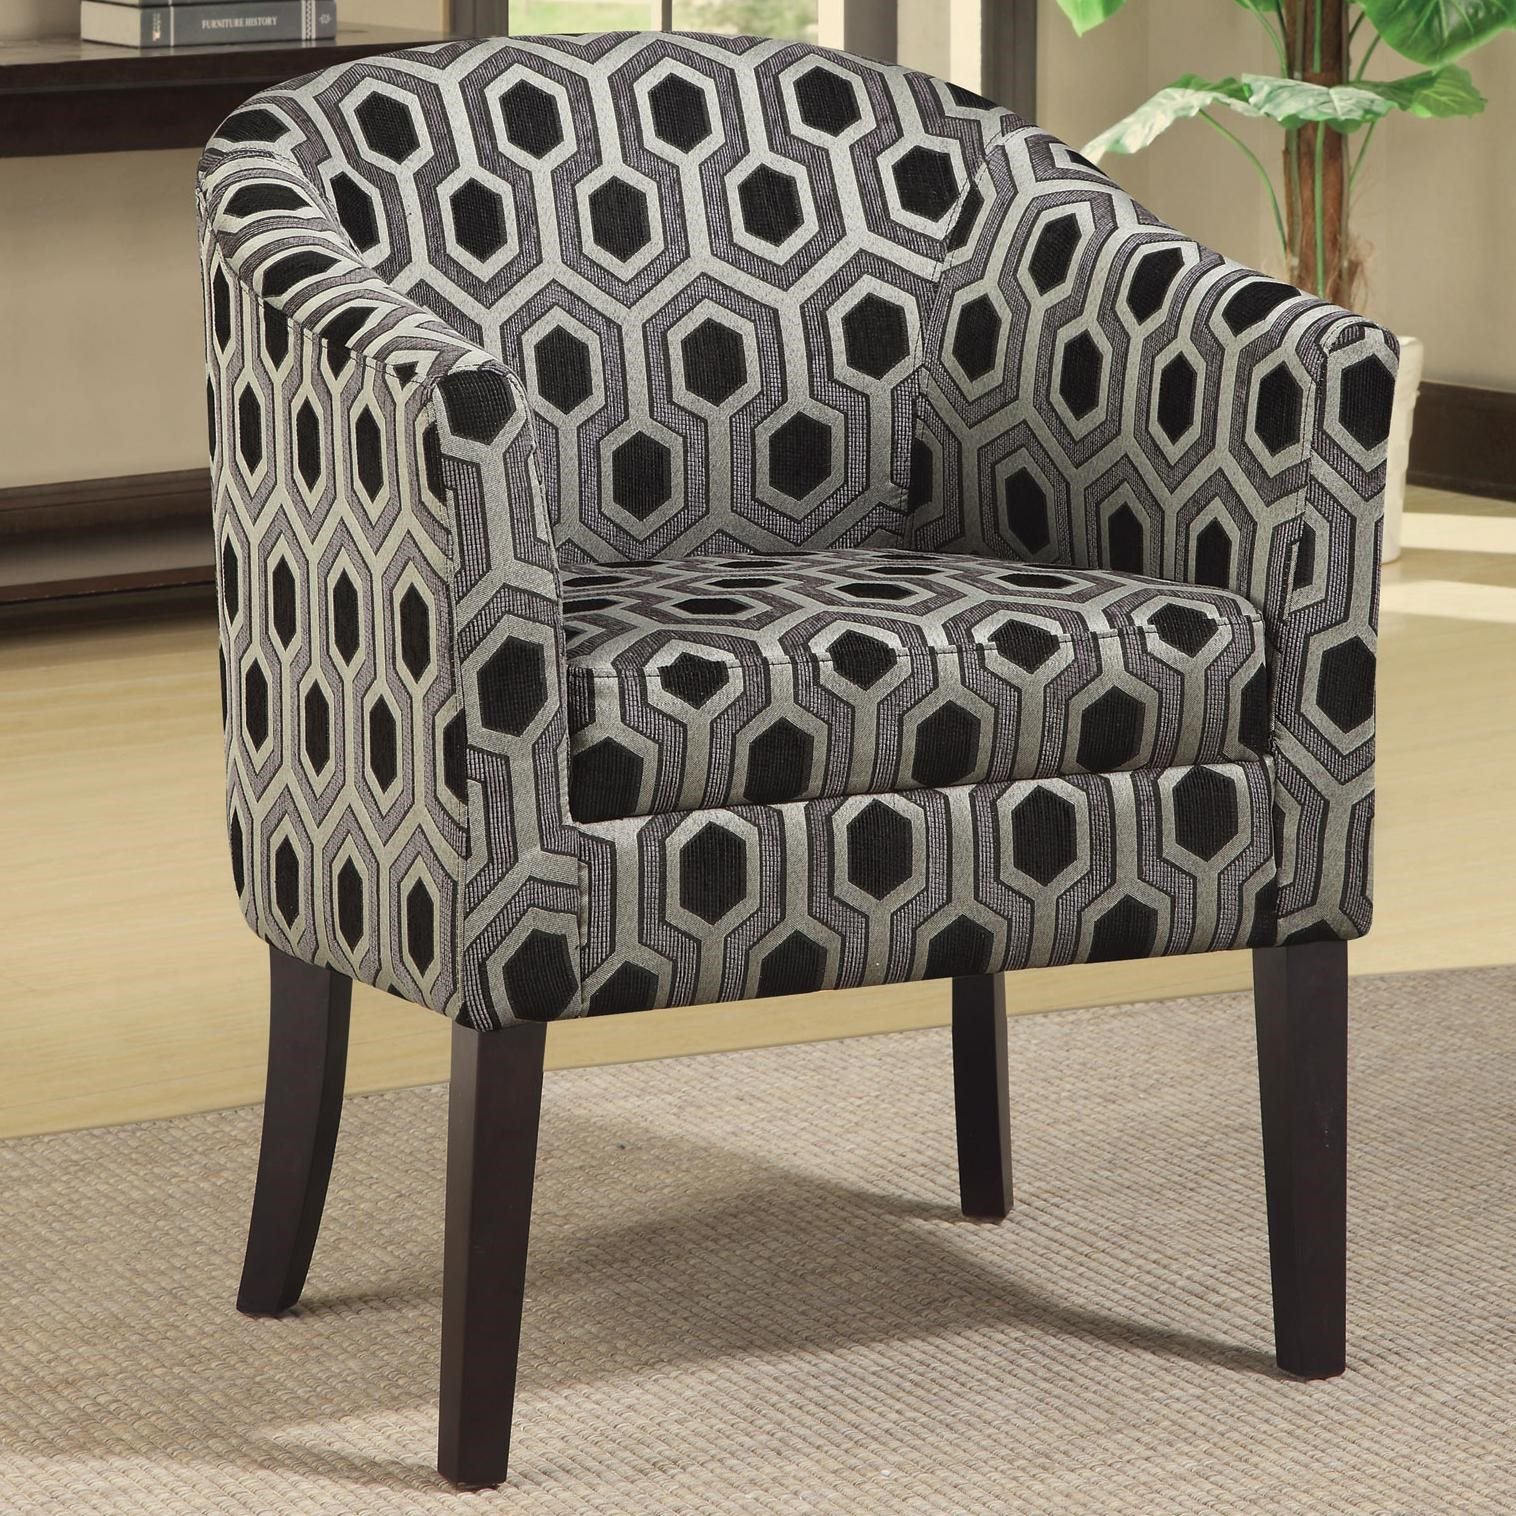 Genial Charlotte Hexagon Patterned Accent Chair With Wood Legs By Coaster